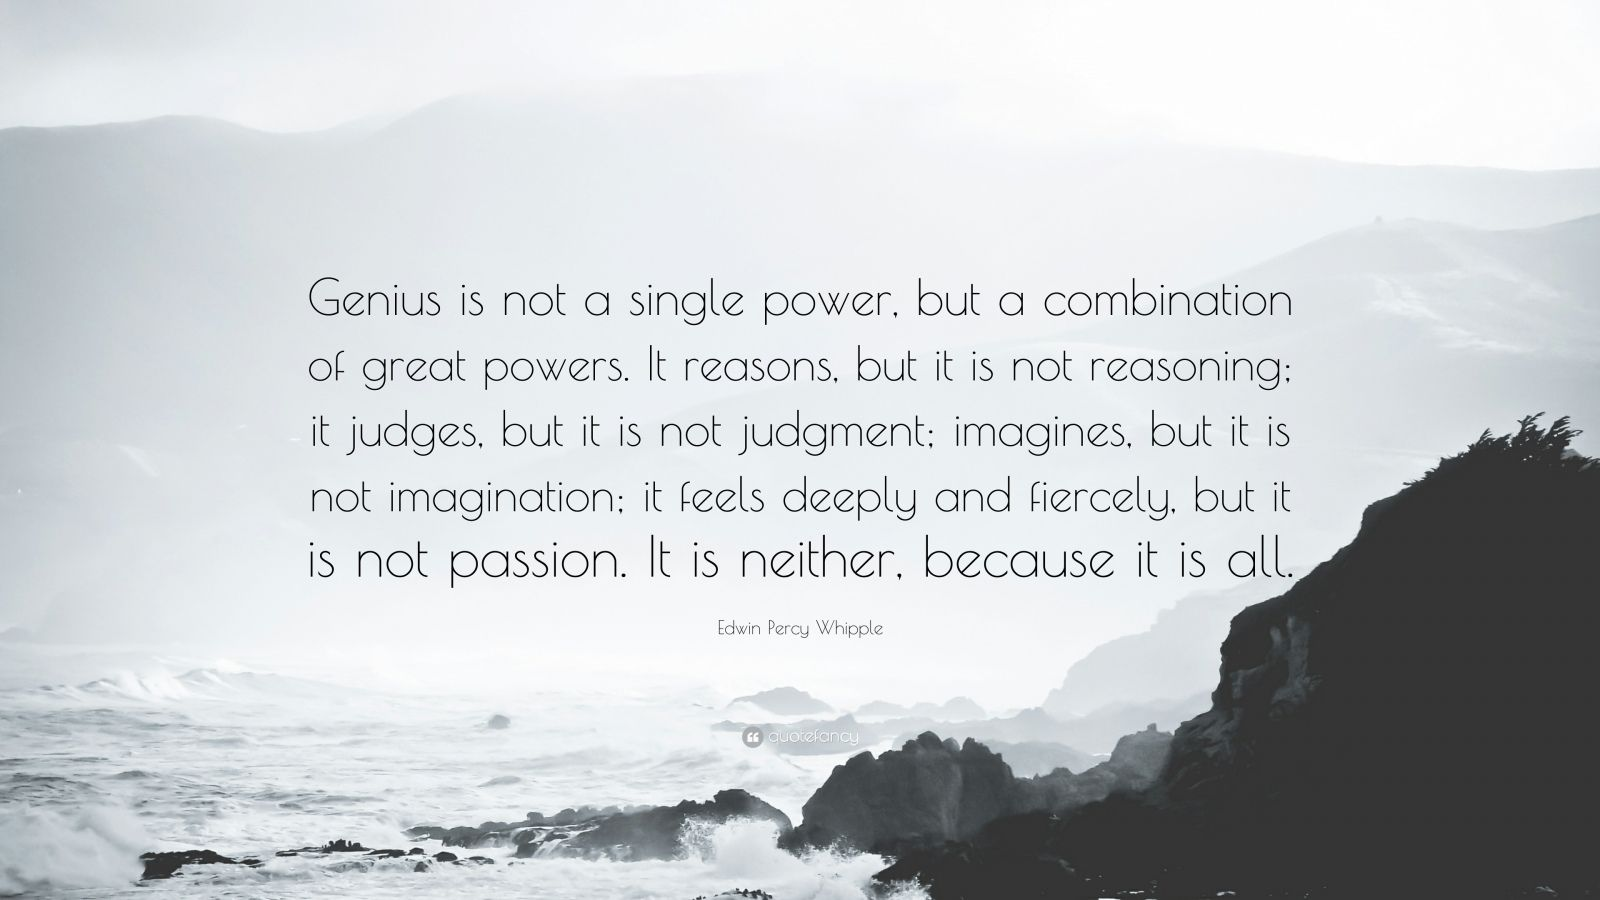 """Edwin Percy Whipple Quote: """"Genius is not a single power, but a combination of great powers. It reasons, but it is not reasoning; it judges, but it is not judgment; imagines, but it is not imagination; it feels deeply and fiercely, but it is not passion. It is neither, because it is all."""""""